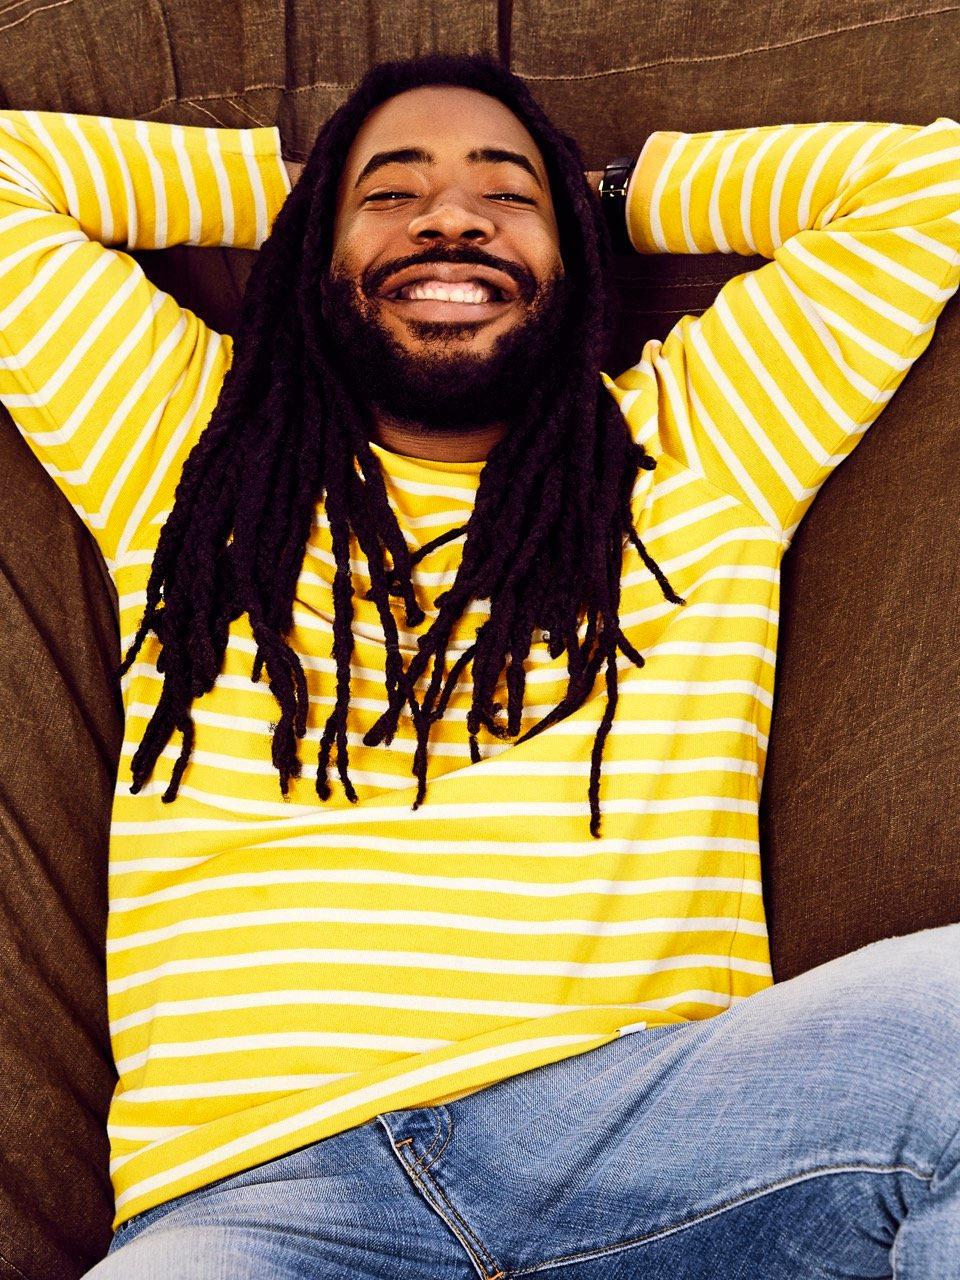 Shelley Marshaun Massenburg-Smith, better known by his stage name DRAM, is an American rapper, singer, songwriter and actor from Hampton, Virginia.